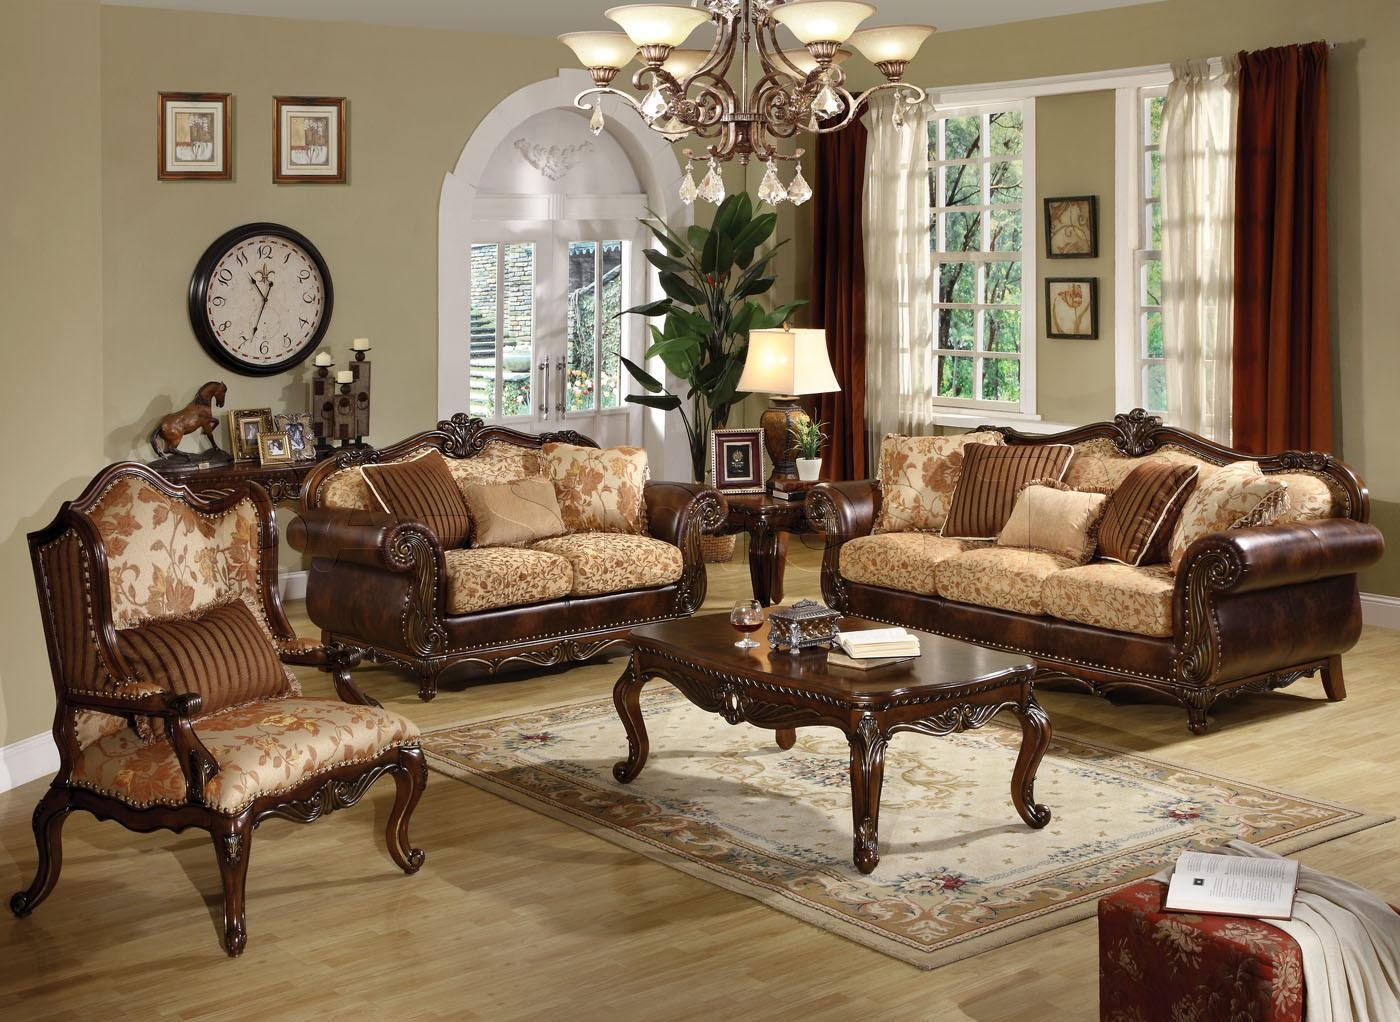 Sofa Chair Sets, Brown Chairs For Living Room With Torricella For Traditional Sofas And Chairs (View 13 of 20)